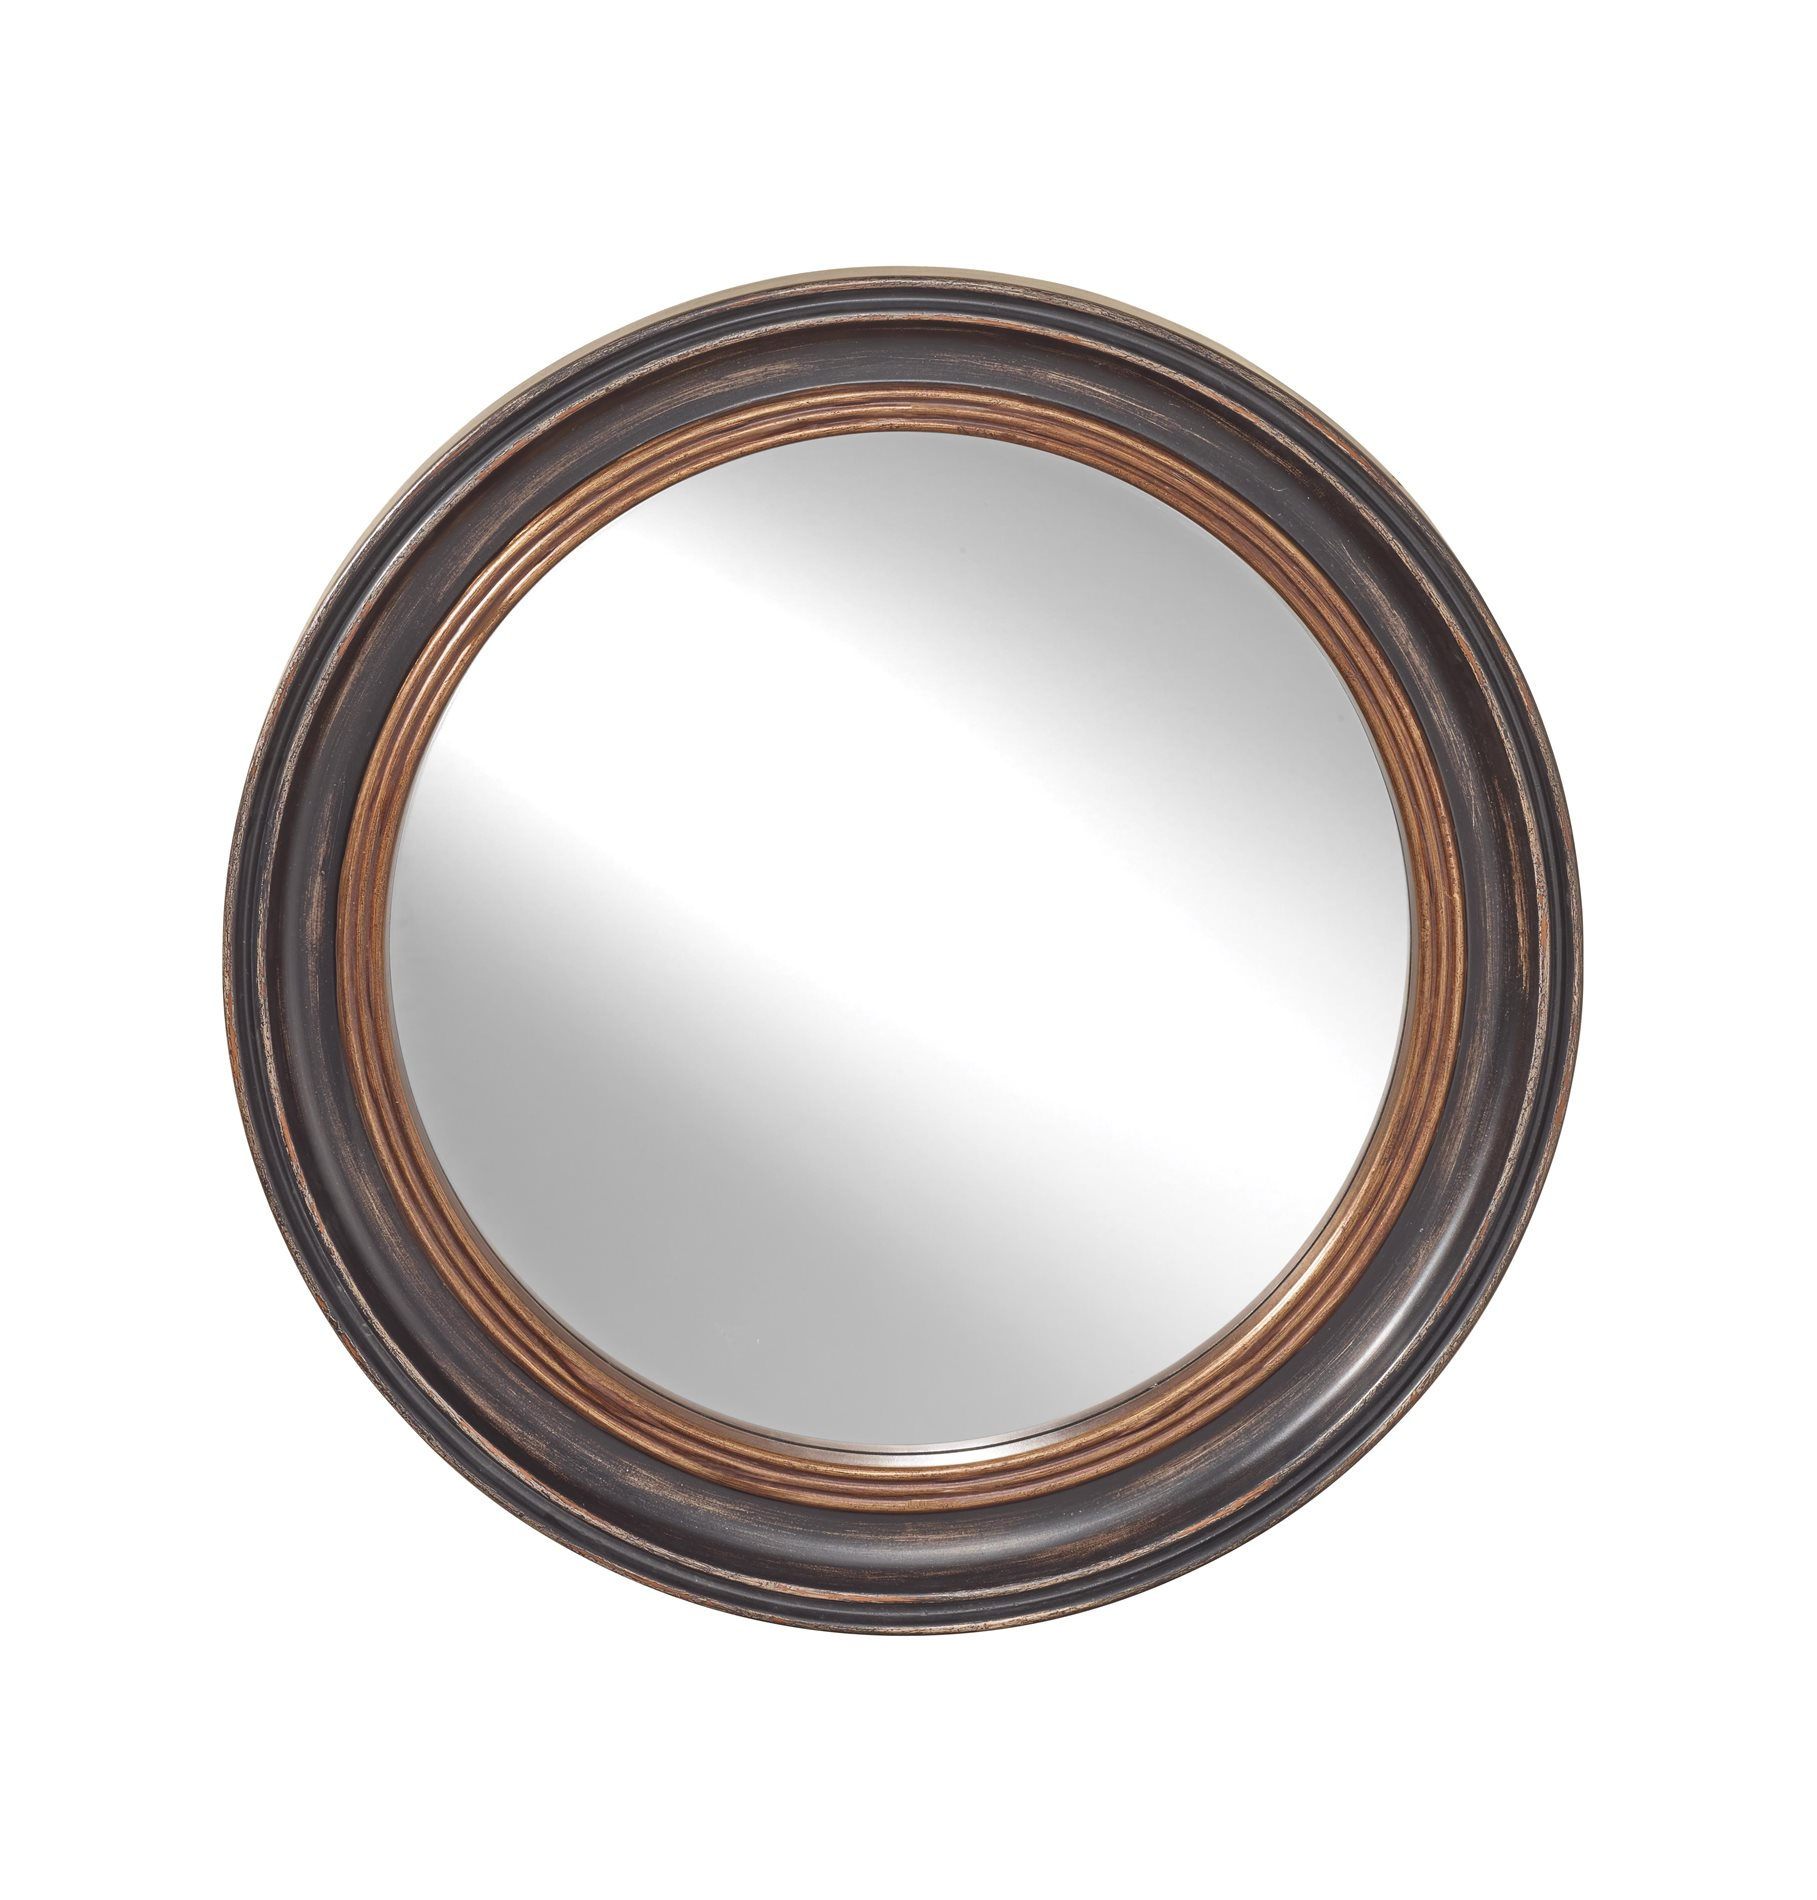 Murray Feiss Mirrors: Murray Feiss MR1193DBK Traditional Round Mirror MRF-MR1193DBK